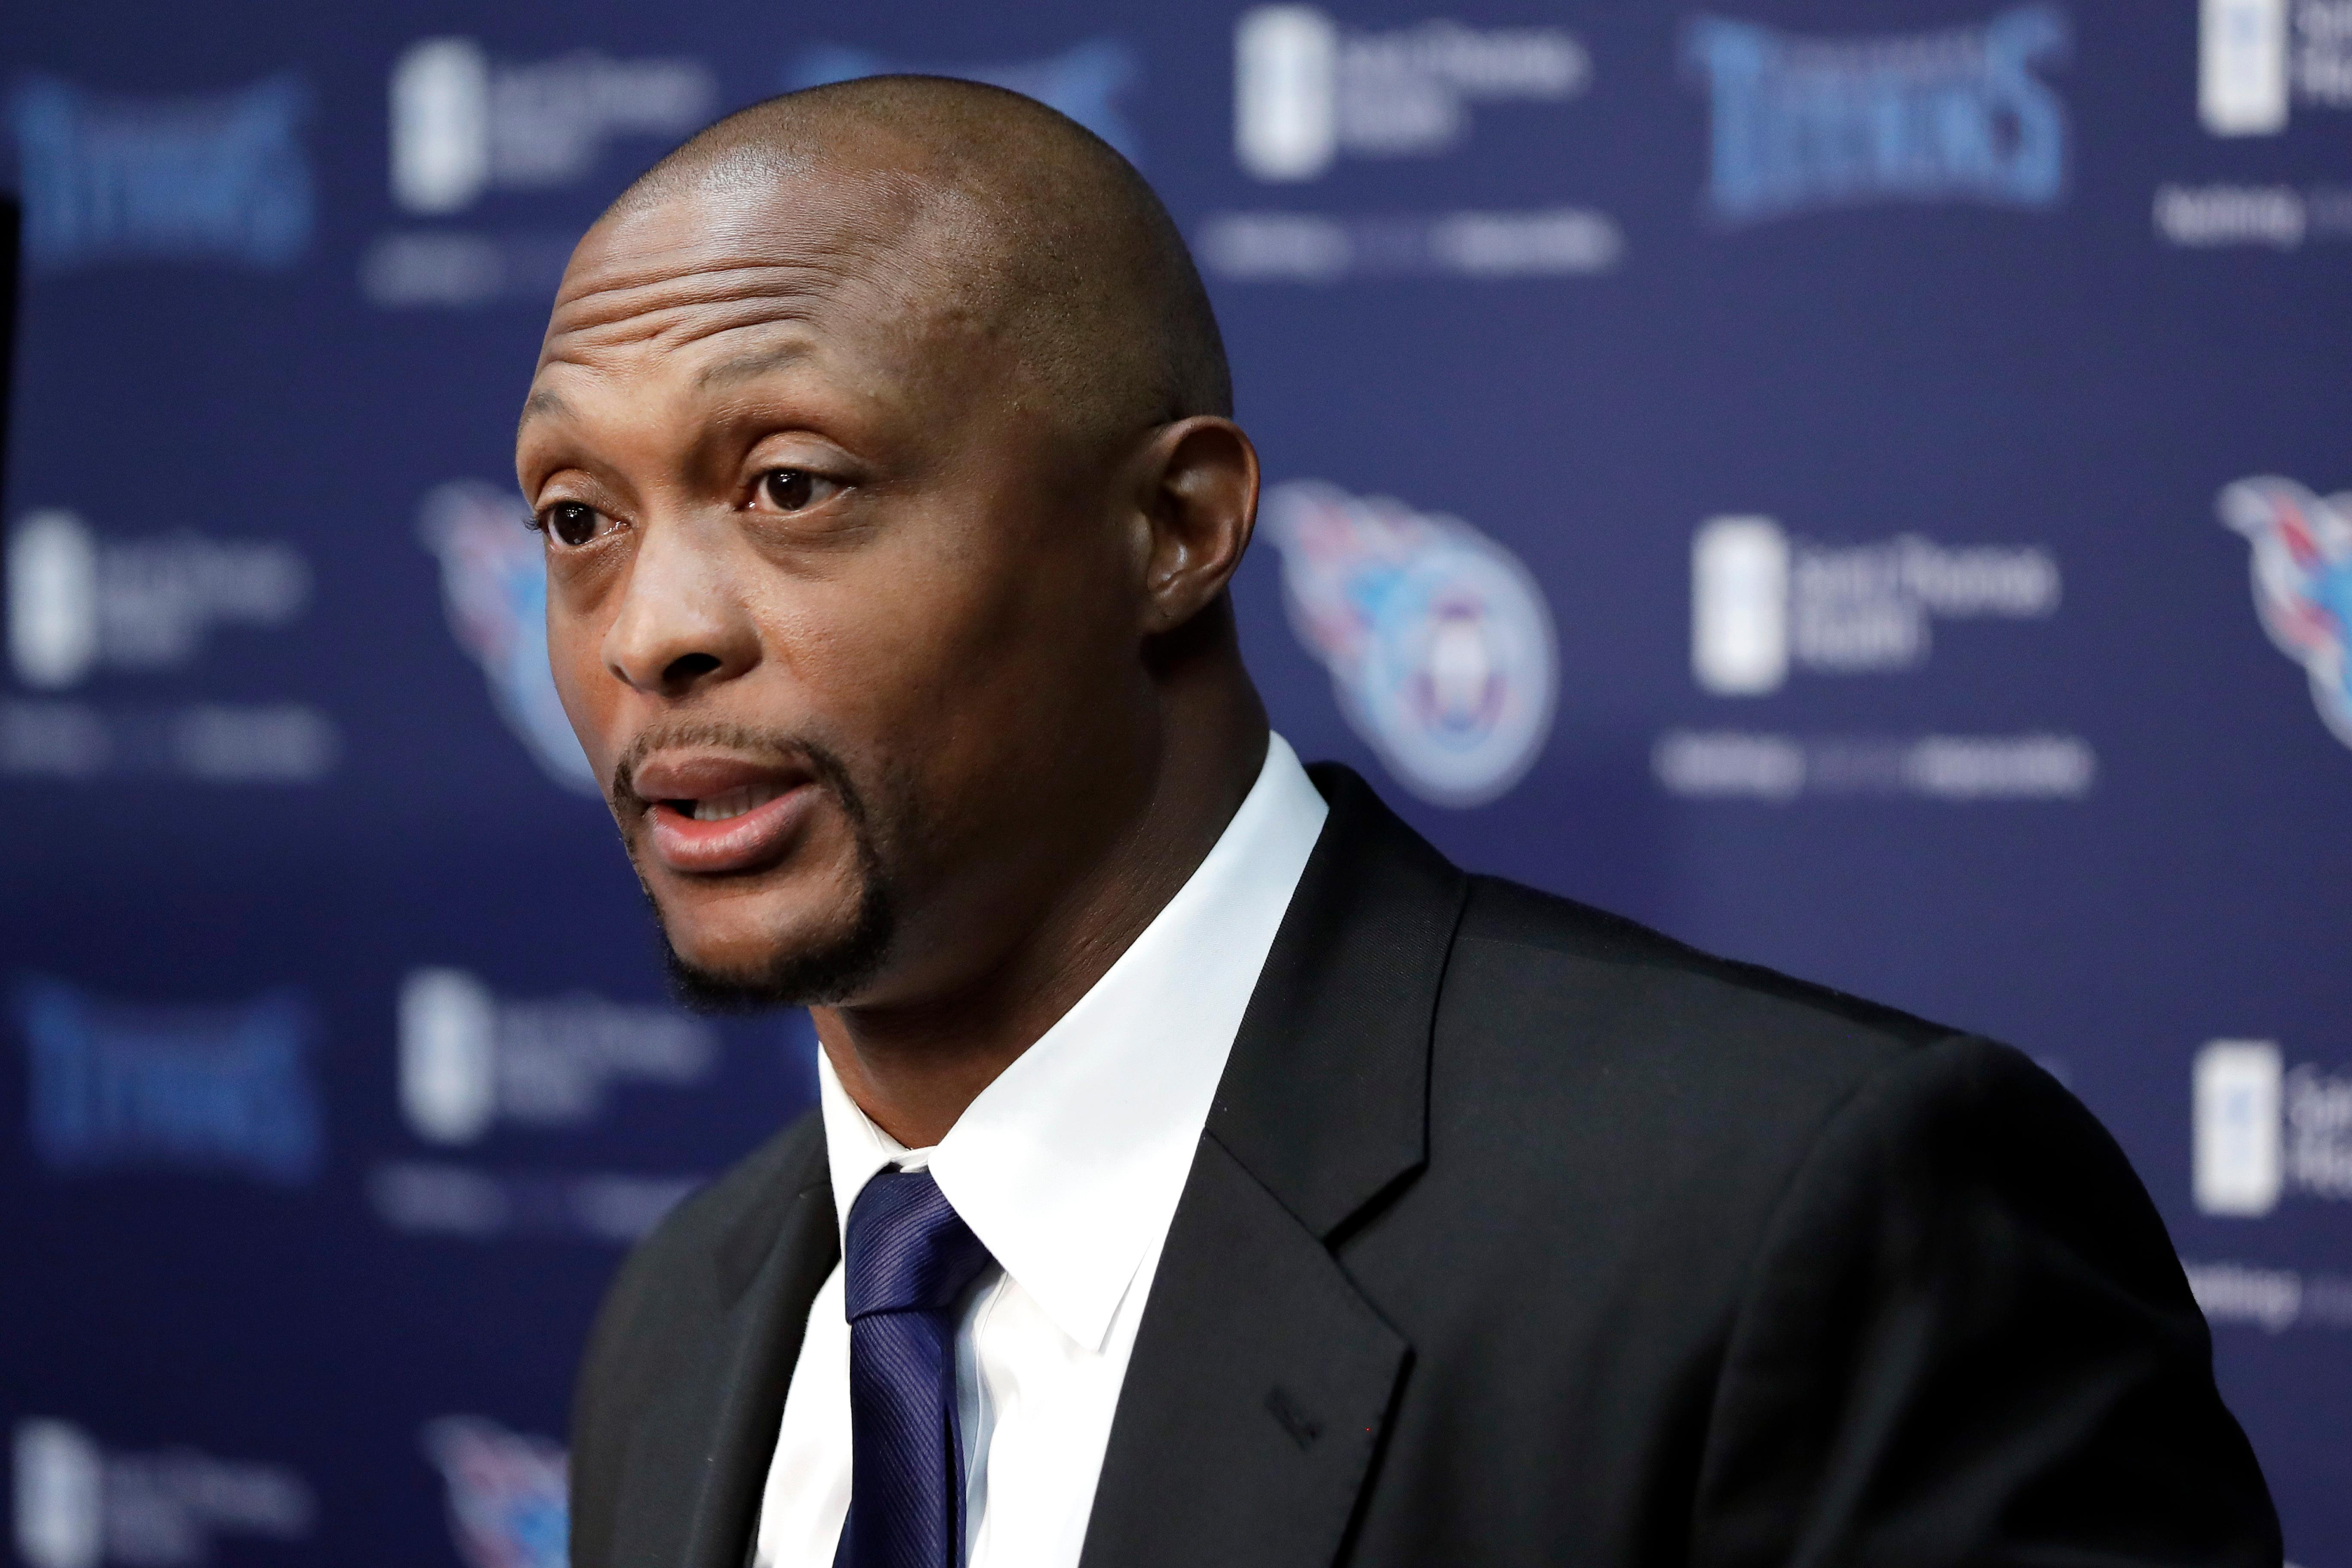 Former Tennessee Titans running back Eddie George speaks during an announcement at the Titans' NFL football training facility Wednesday, June 12, 2019, in Nashville, Tenn., that his number will be retired. The team will retire George's No. 27 and former quarterback Steve McNair's No. 9 on Sept. 15 at their home opener against the Indianapolis Colts. (AP Photo/Mark Humphrey)